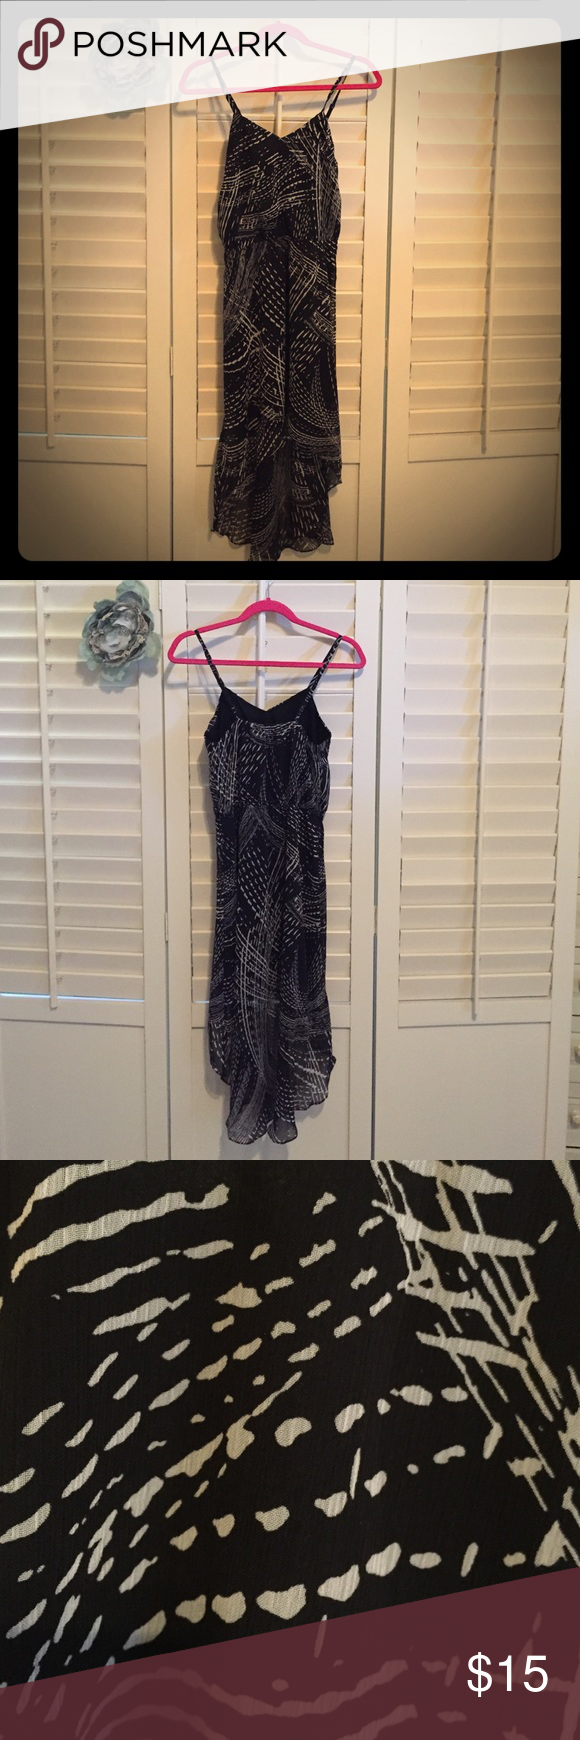 Black and White High-Low Dress Express High-Low dress with adjustable straps.  Size small and in perfect condition. Express Dresses High Low